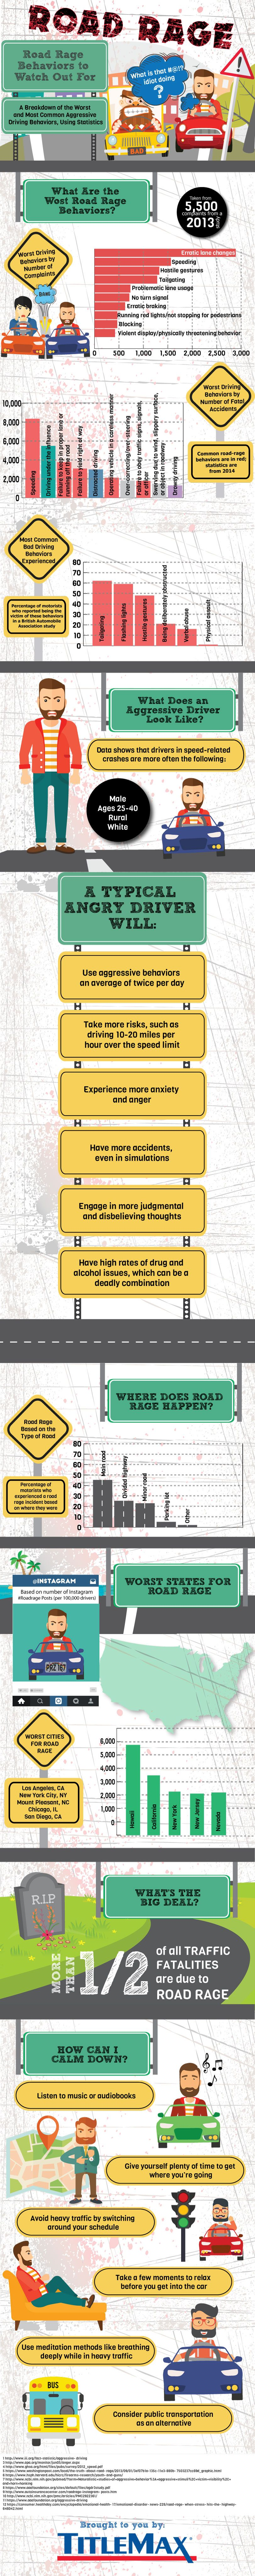 The Many Behaviors Behind Road Rage #infographic